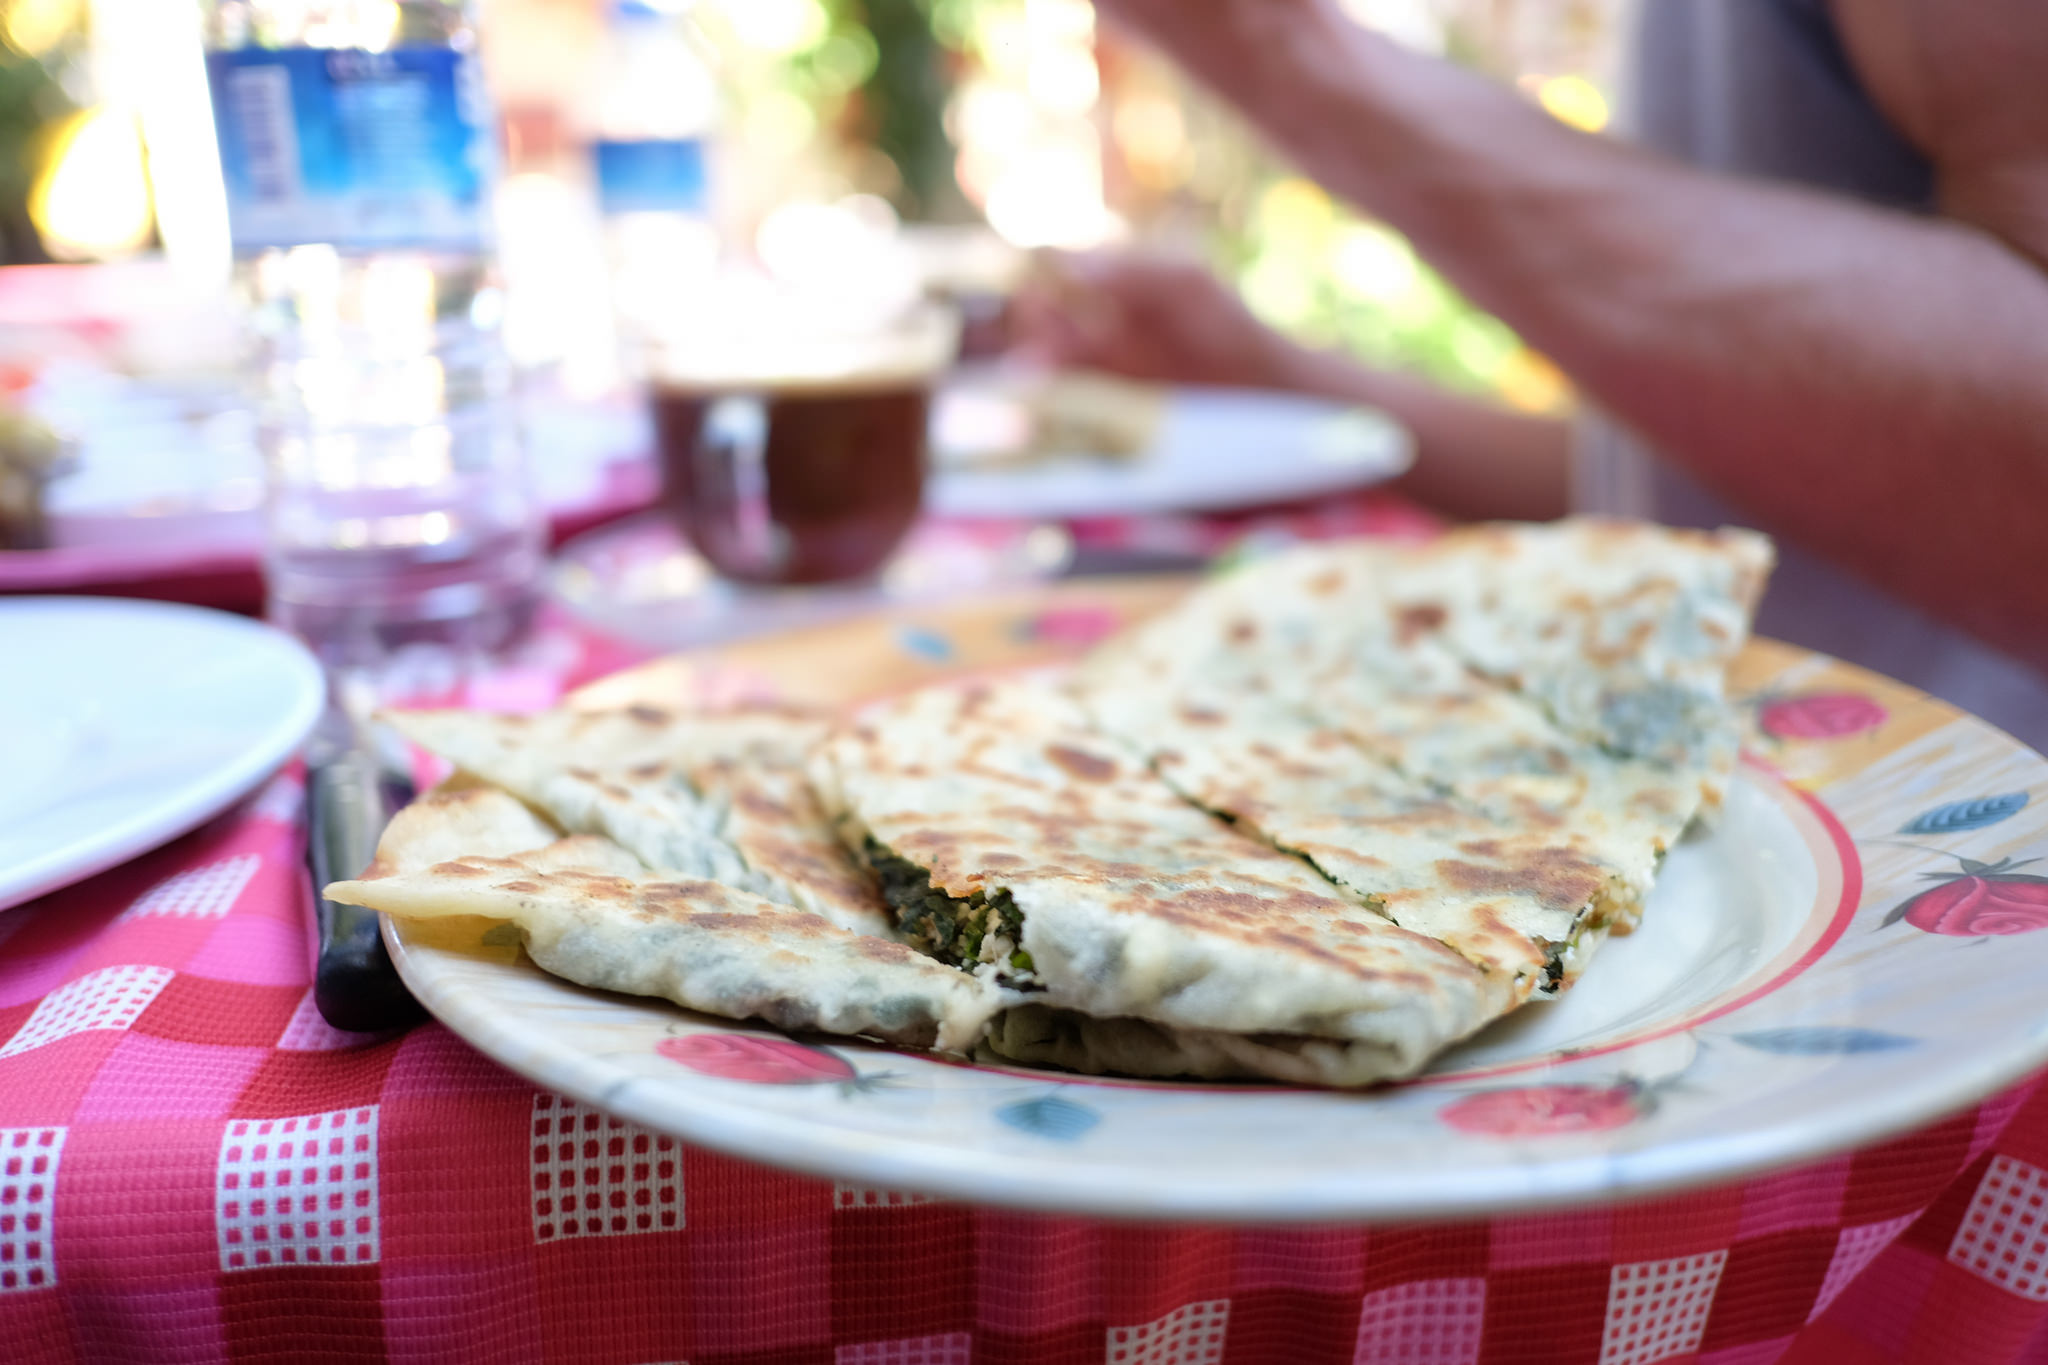 Spinach and cheese gözleme | © Tim Lucas/Flickr